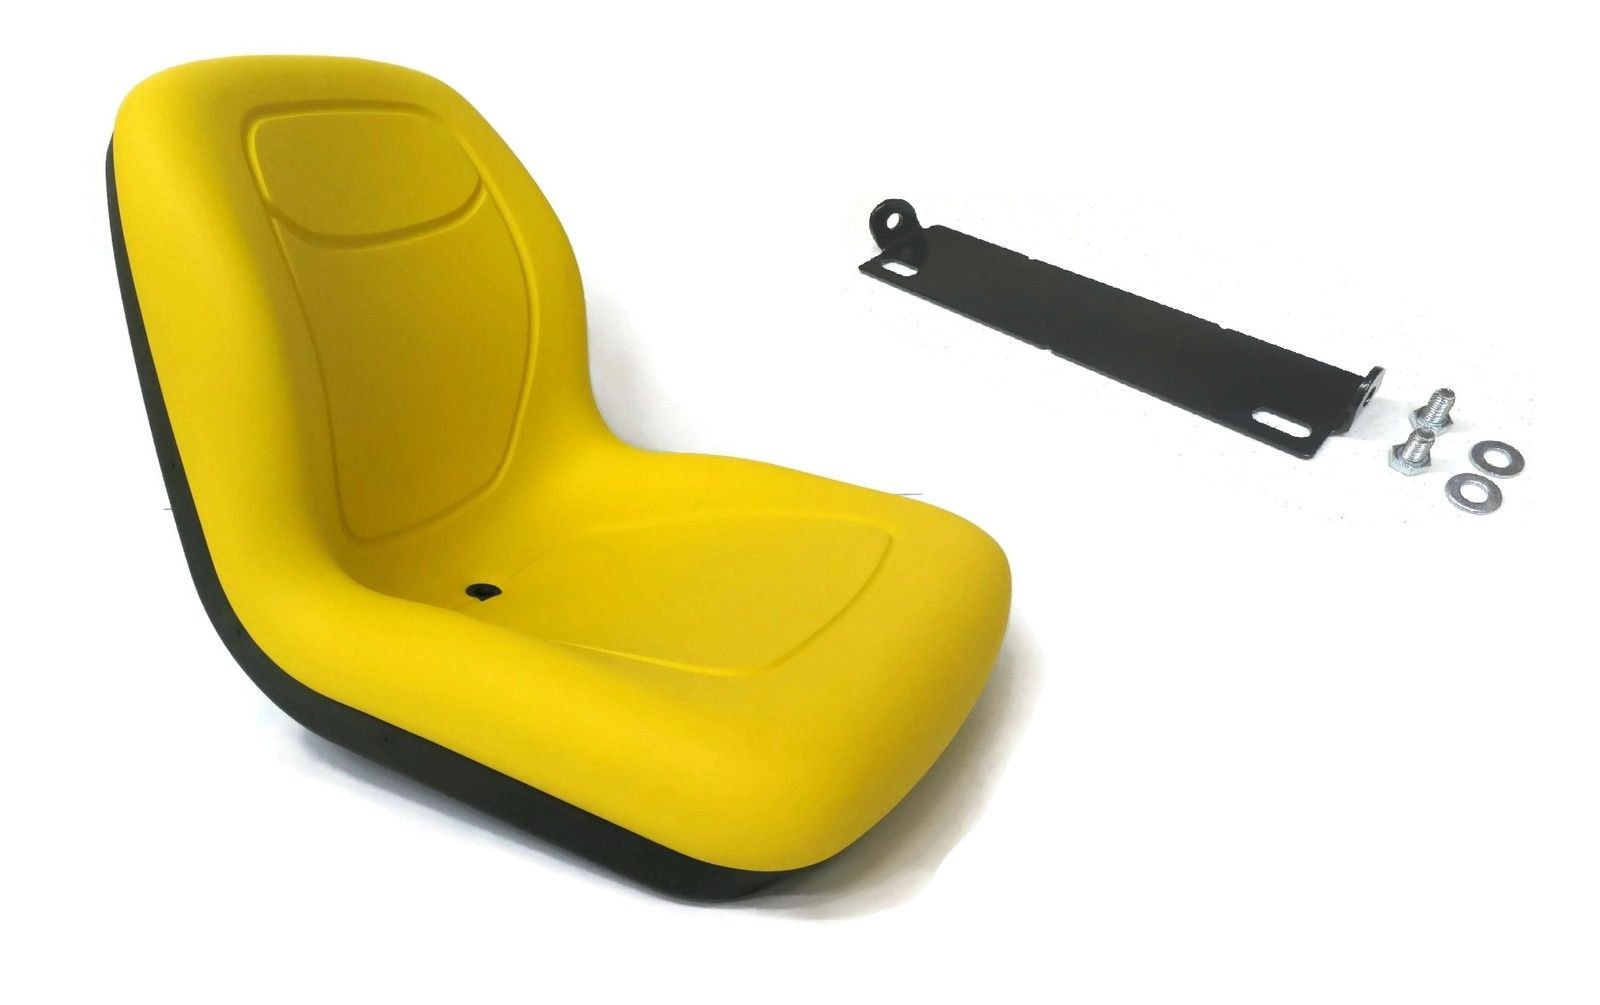 The ROP Shop Yellow HIGH Back SEAT w/Pivot Rod Bracket for John Deere 445 455 SST16 SST18 by The ROP Shop (Image #1)